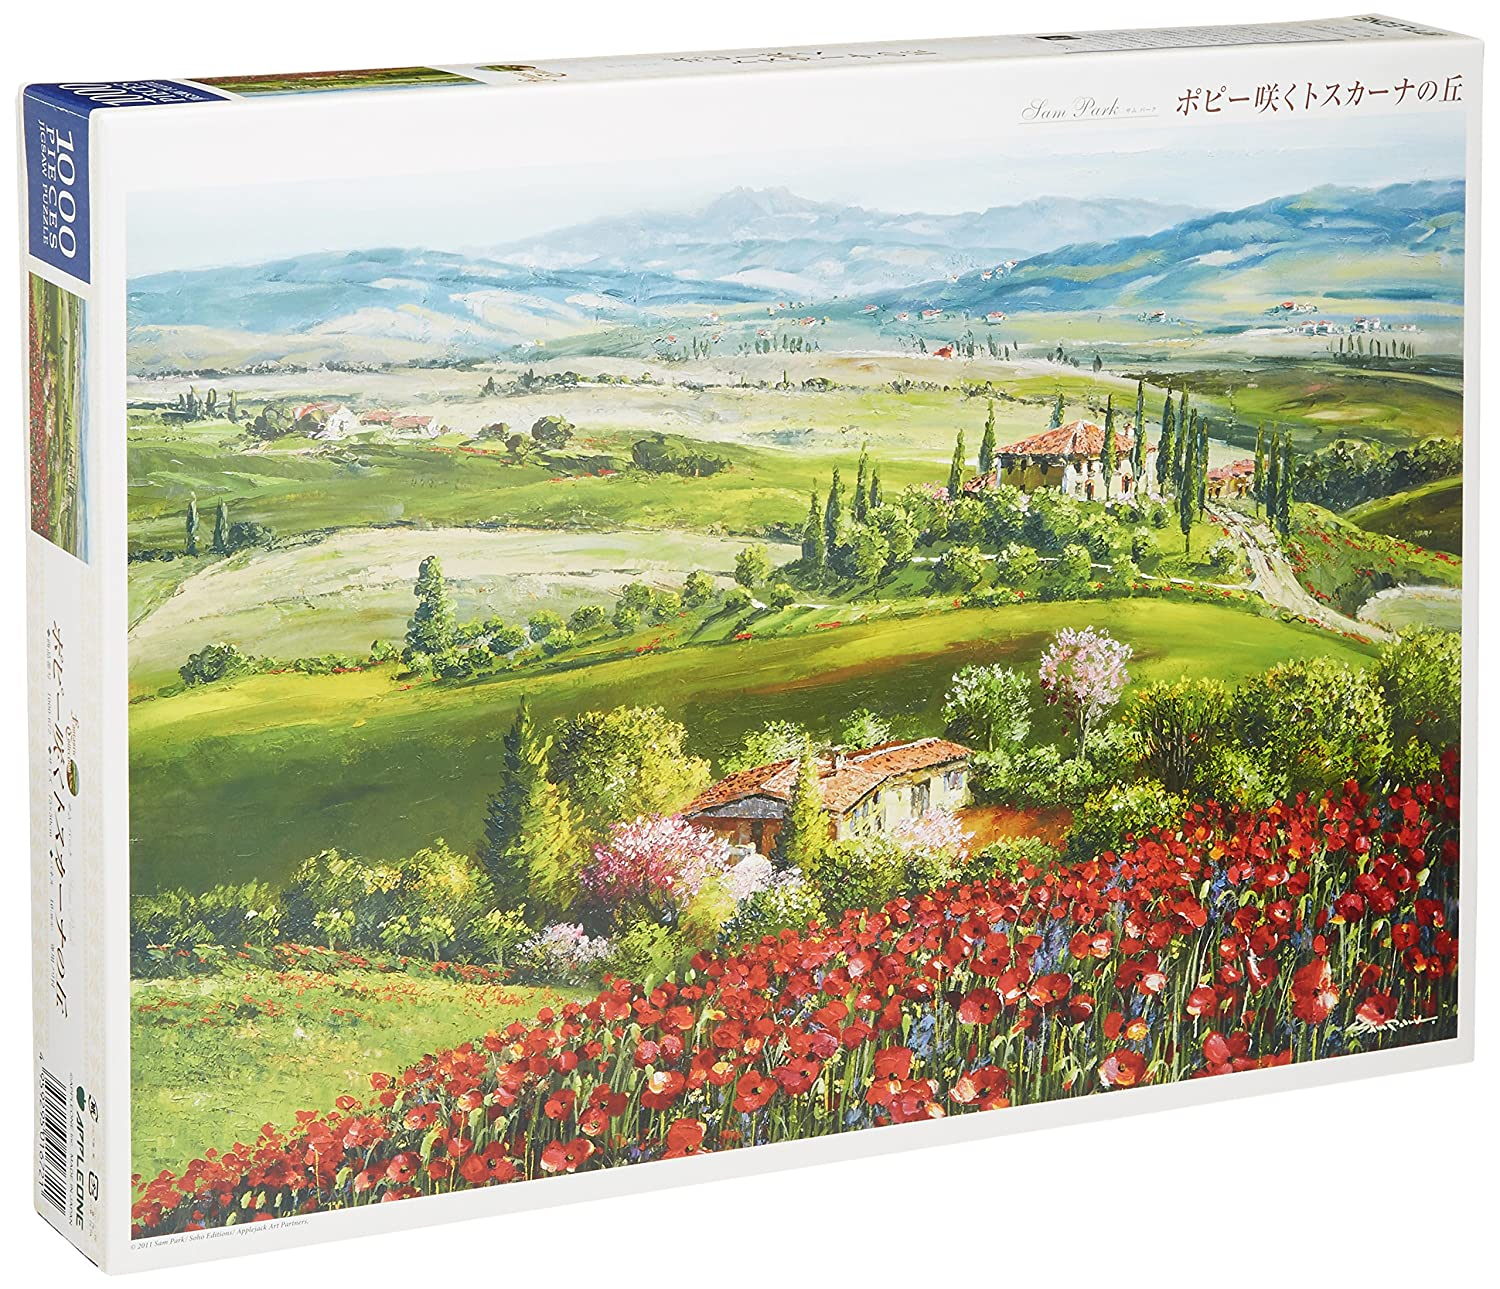 1000-672 hills of Tuscany blooming poppy piece 1000 (japan import)